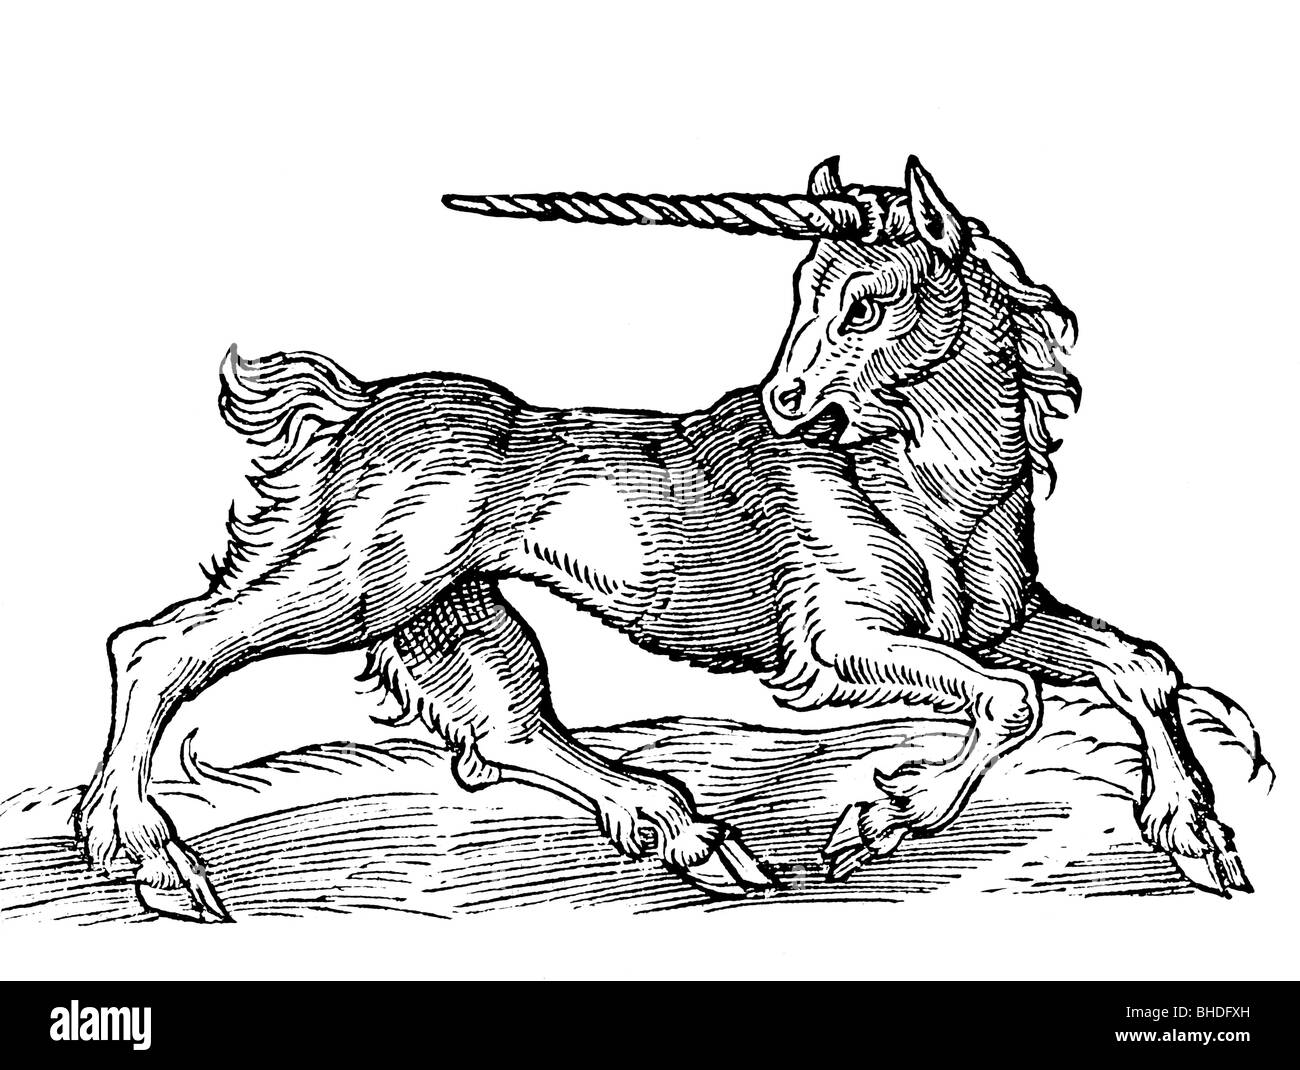 superstition, mythical creatures, unicorn, woodcut after illustrations from the 16th century, historic, historical, - Stock Image